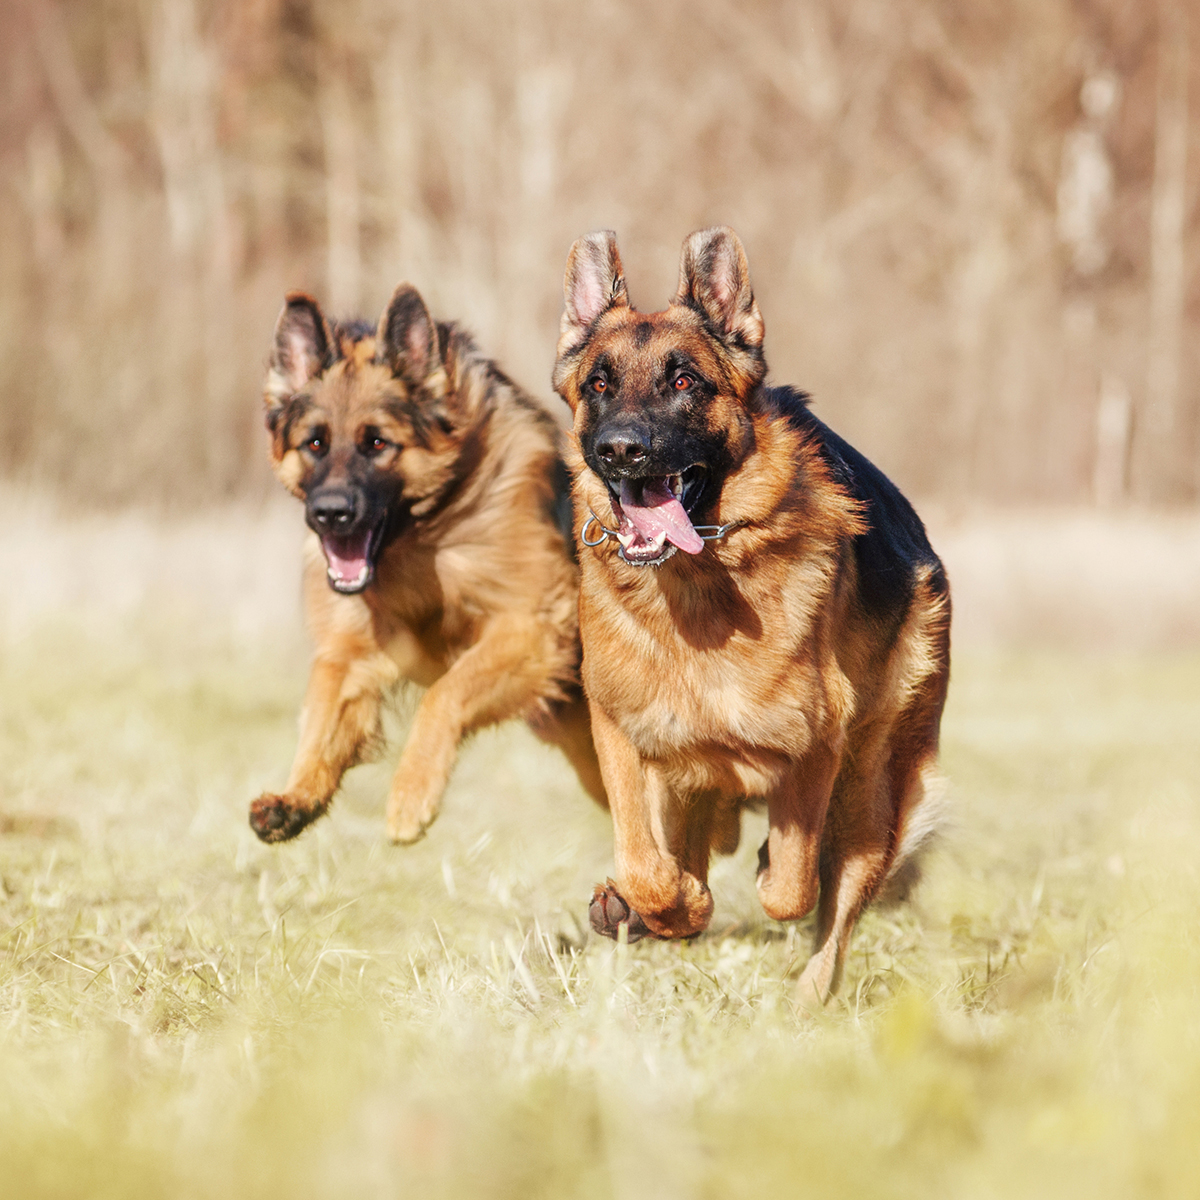 Two guard dogs running